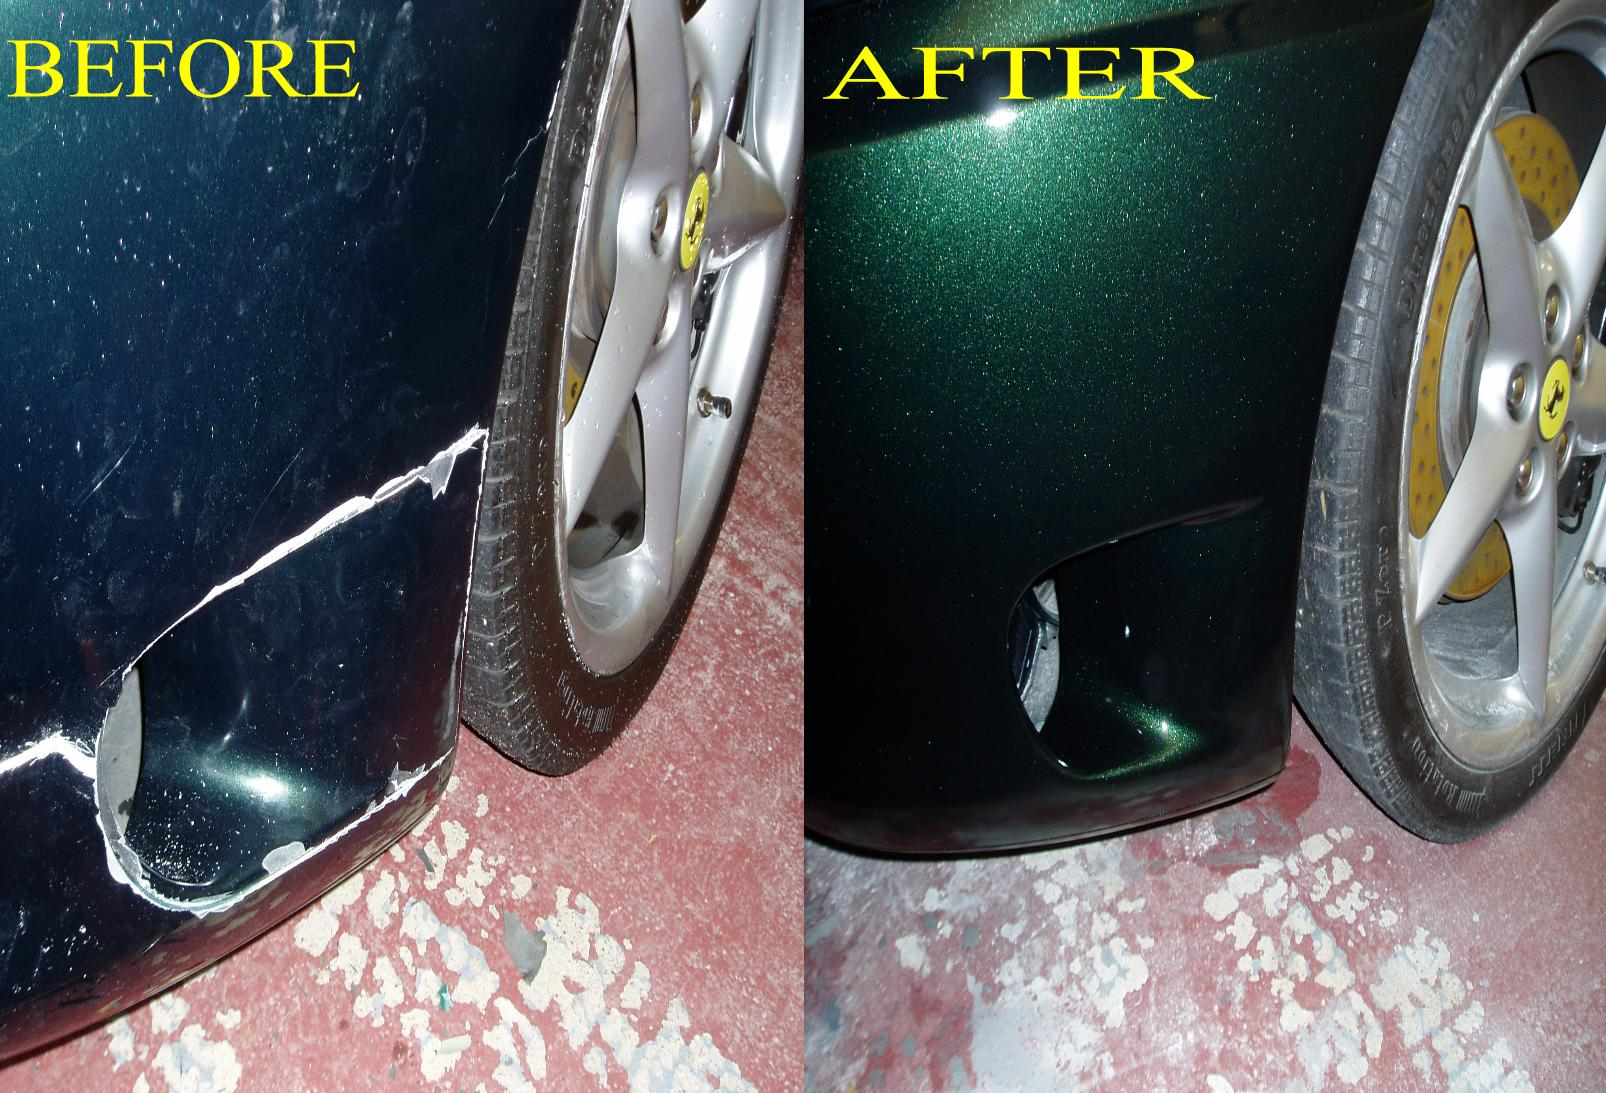 QUALITYSMART CAN REPAIR EVEN HIGH END CARS LIKE FERRARI WHICH HAVE FIBRE GLASS BUMPERS WE ARE EXPERTCAT MATCHING ANY COLOUR ON ANY CAR FROM BIRMINGHAM TO SOLIHULL AND TELFORD TO WORCESTER QUALITYSMART PROVIDE A QUALITY SERVICE AT YOUR CONVENIENCE.